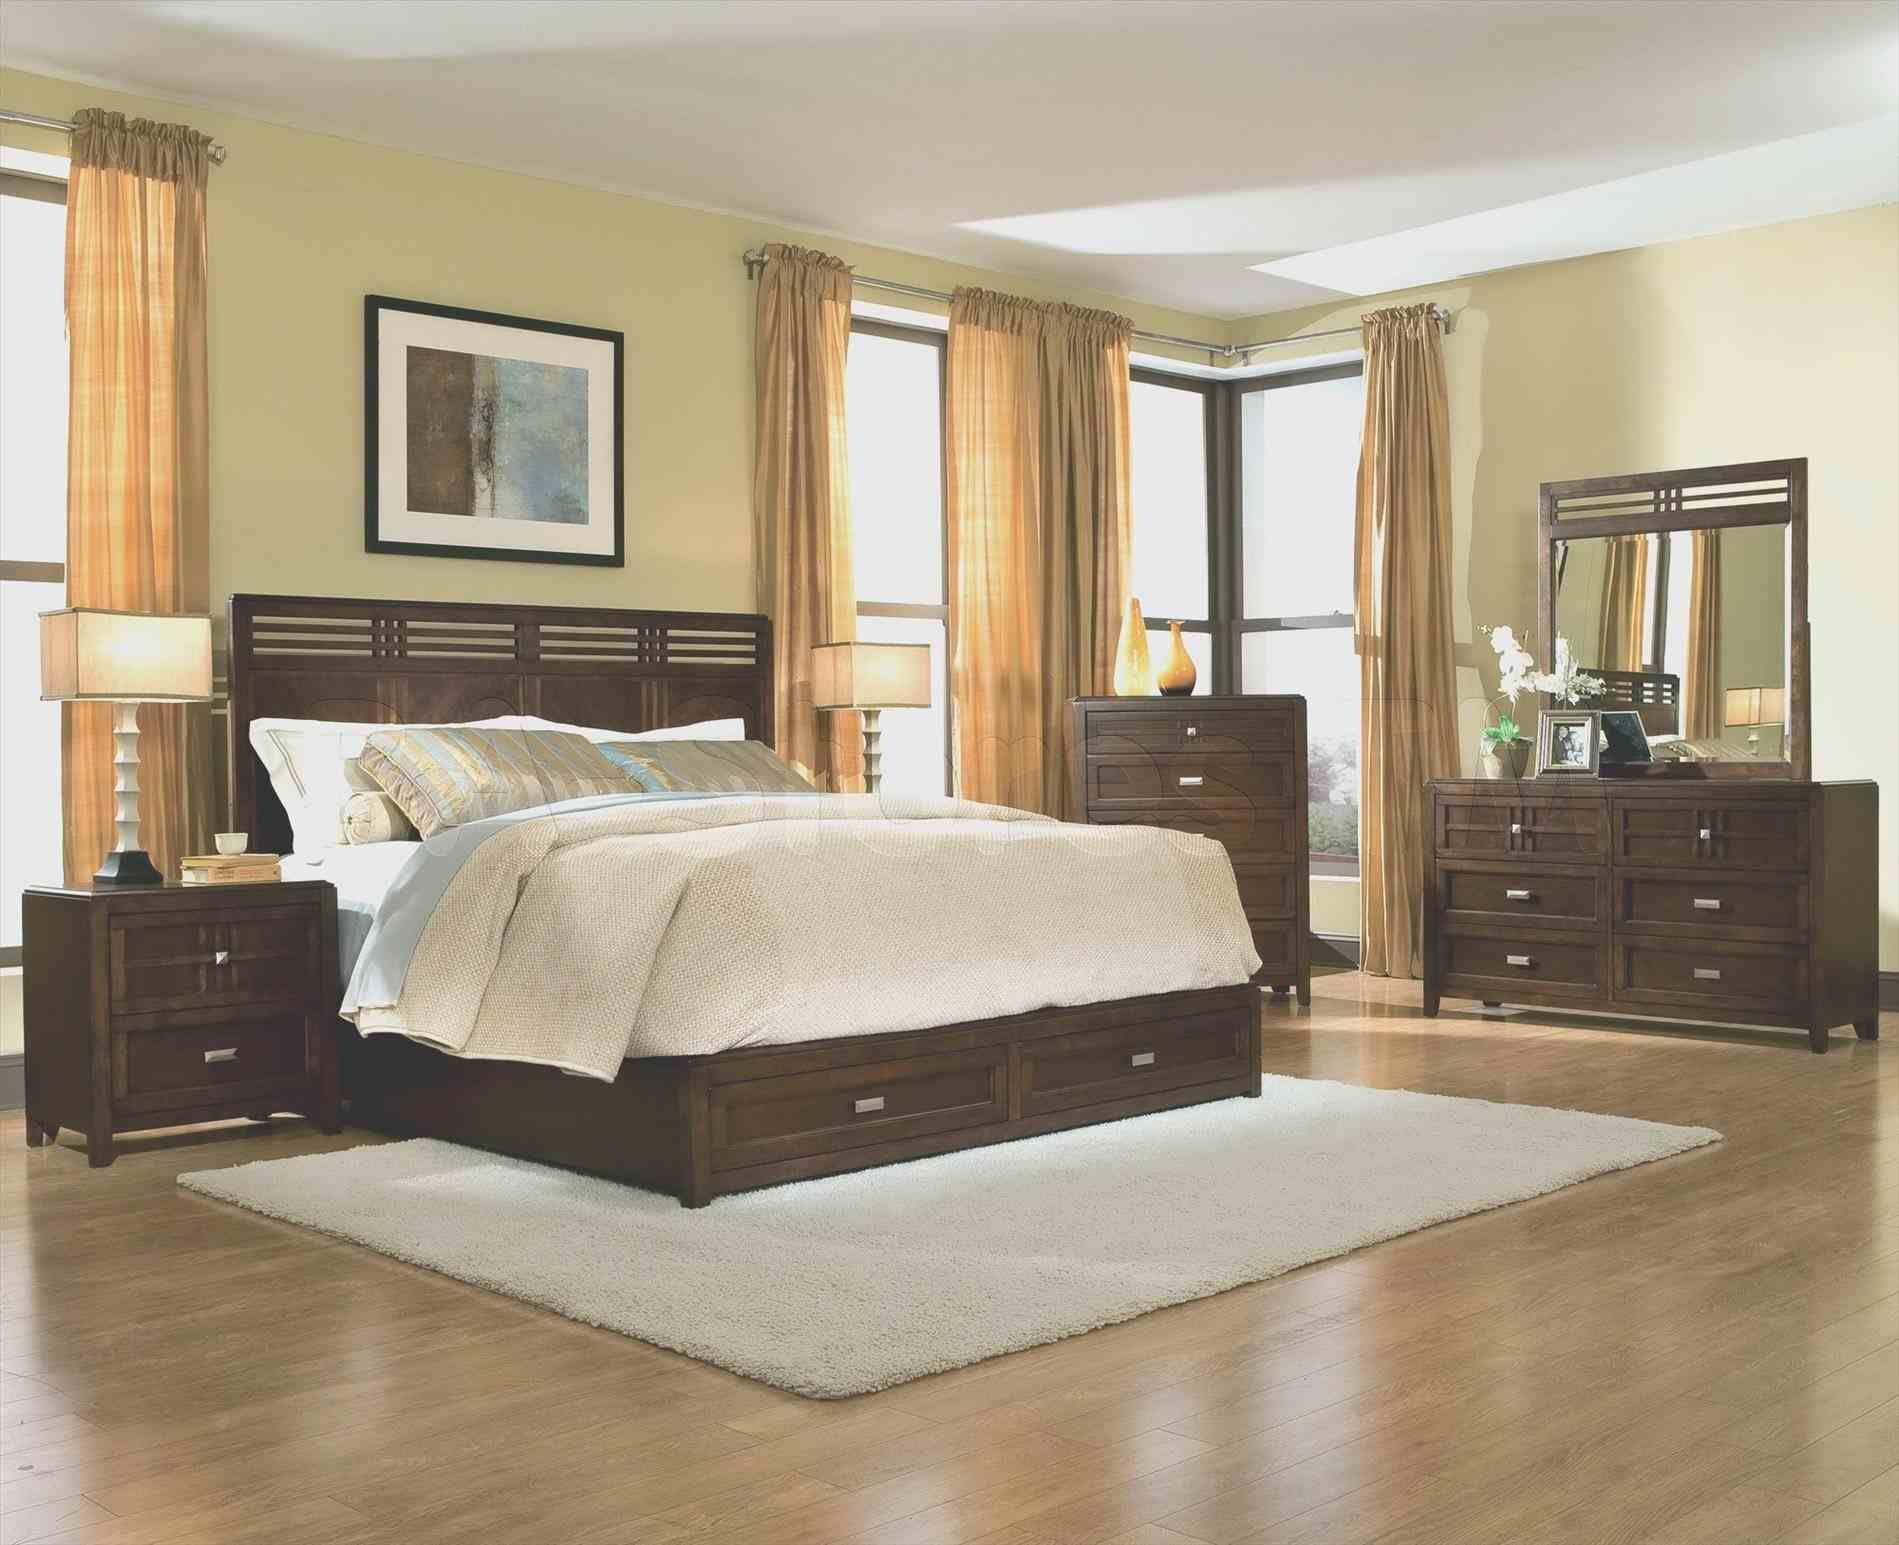 New Post traditional master bedroom decorating ideas visit Bobayule ...